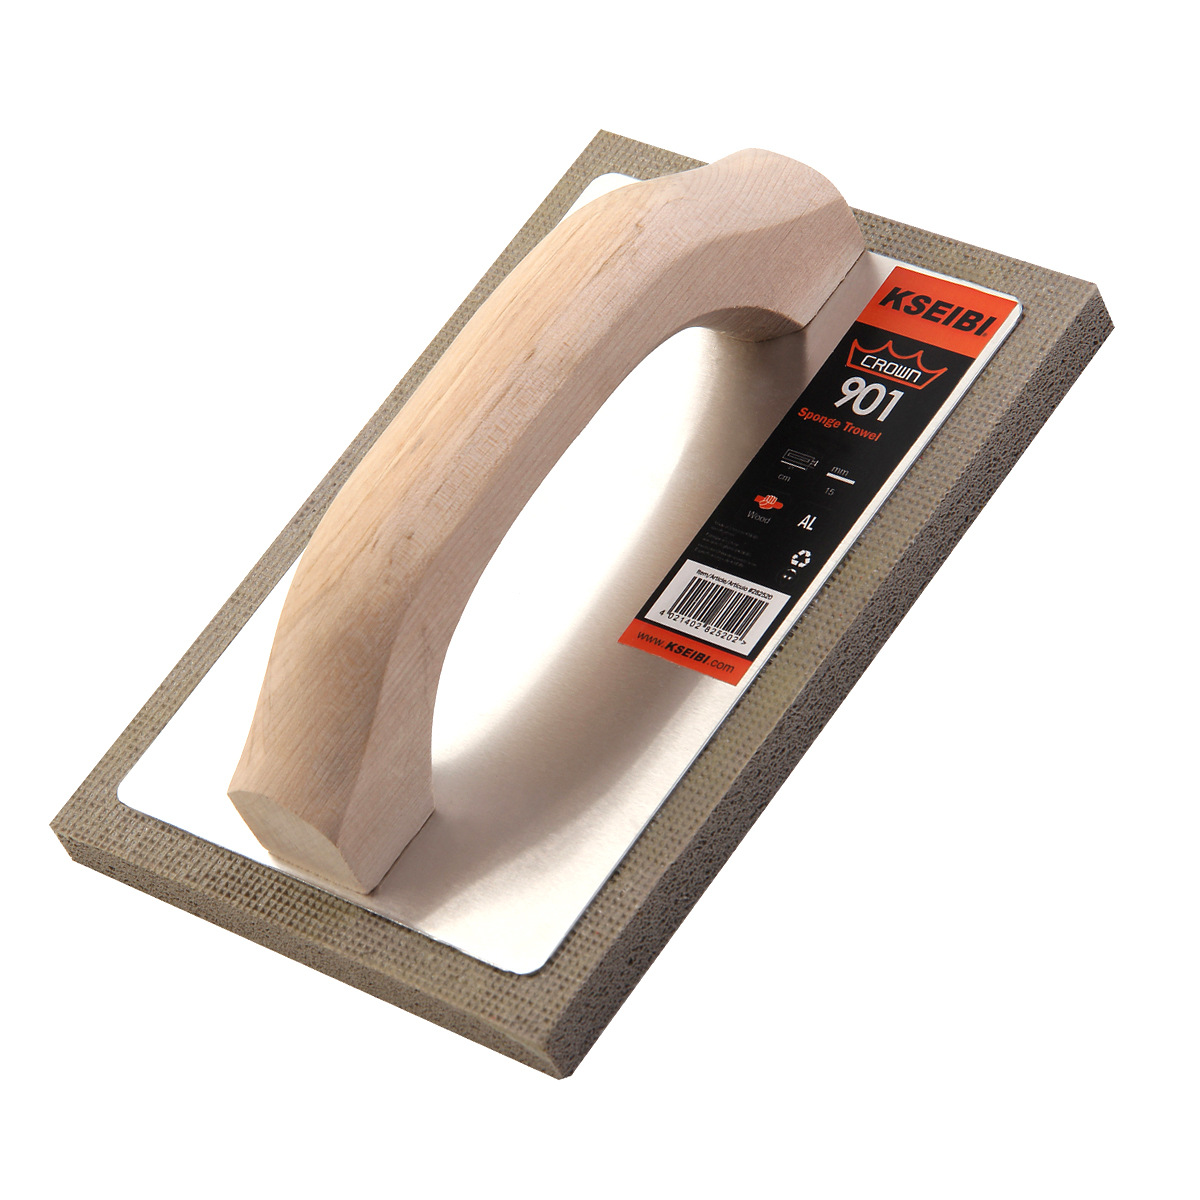 Kseibi Paradi Than Rubber Claying Board Foaming Rubber Foam Claying Board Wooden Handle Plastering Trowel Mason Tool